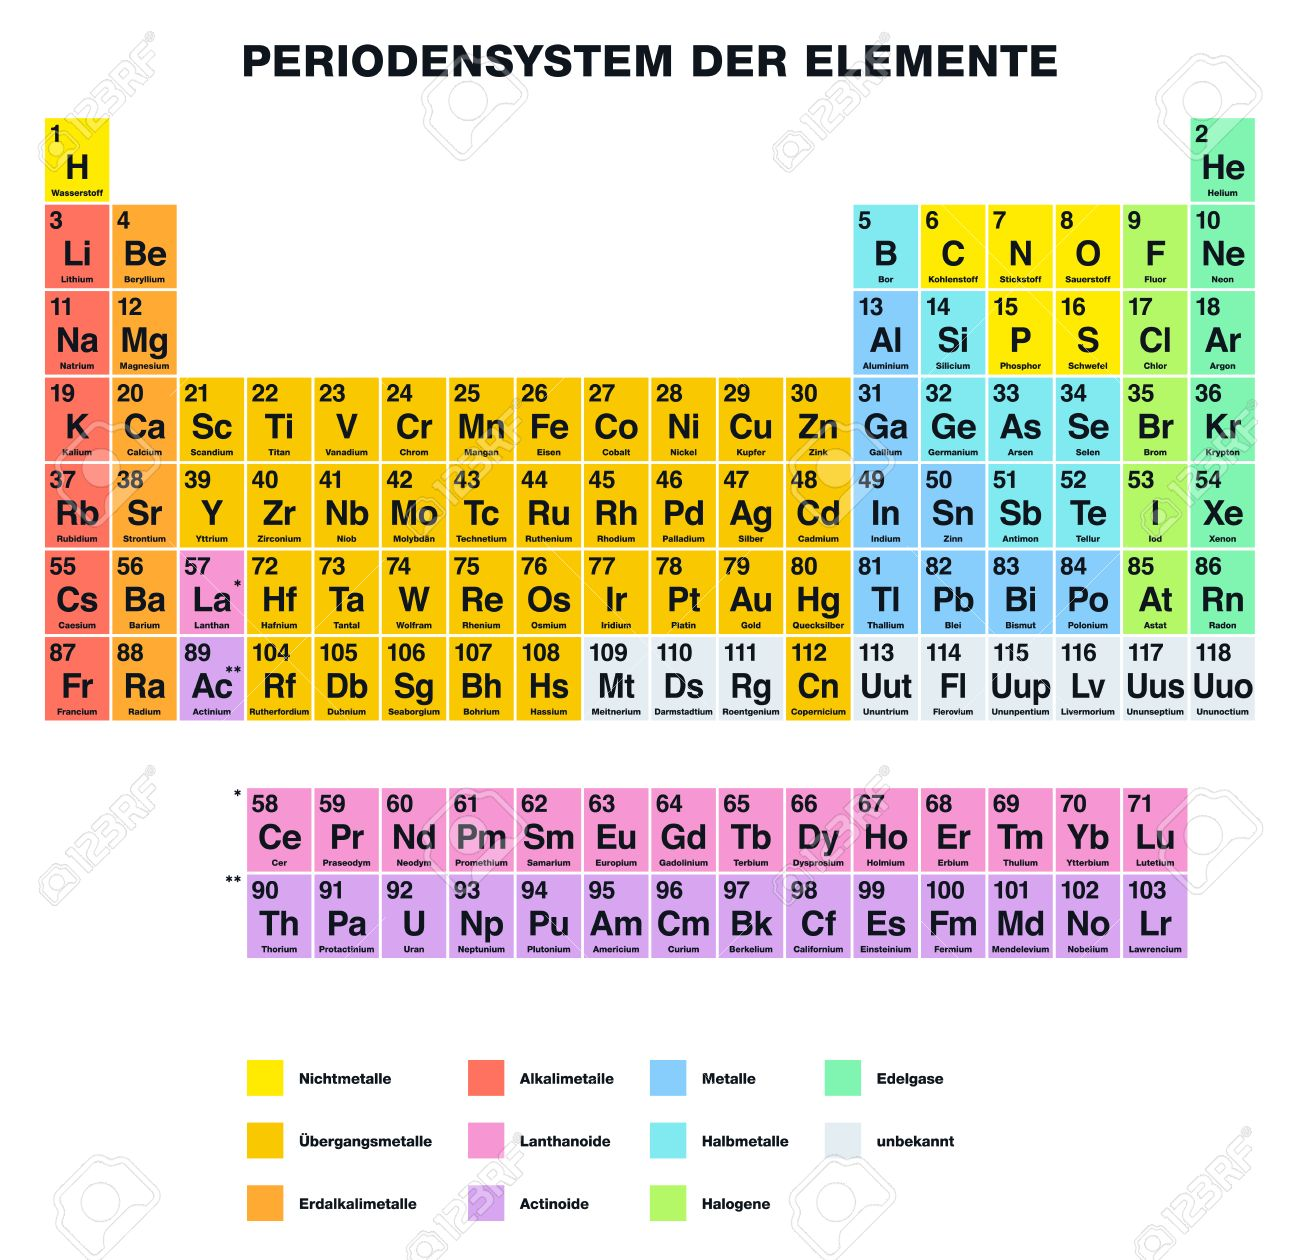 Periodic table of the elements german labeling tabular arrangement periodic table of the elements german labeling tabular arrangement of chemical elements with atomic numbers urtaz Images